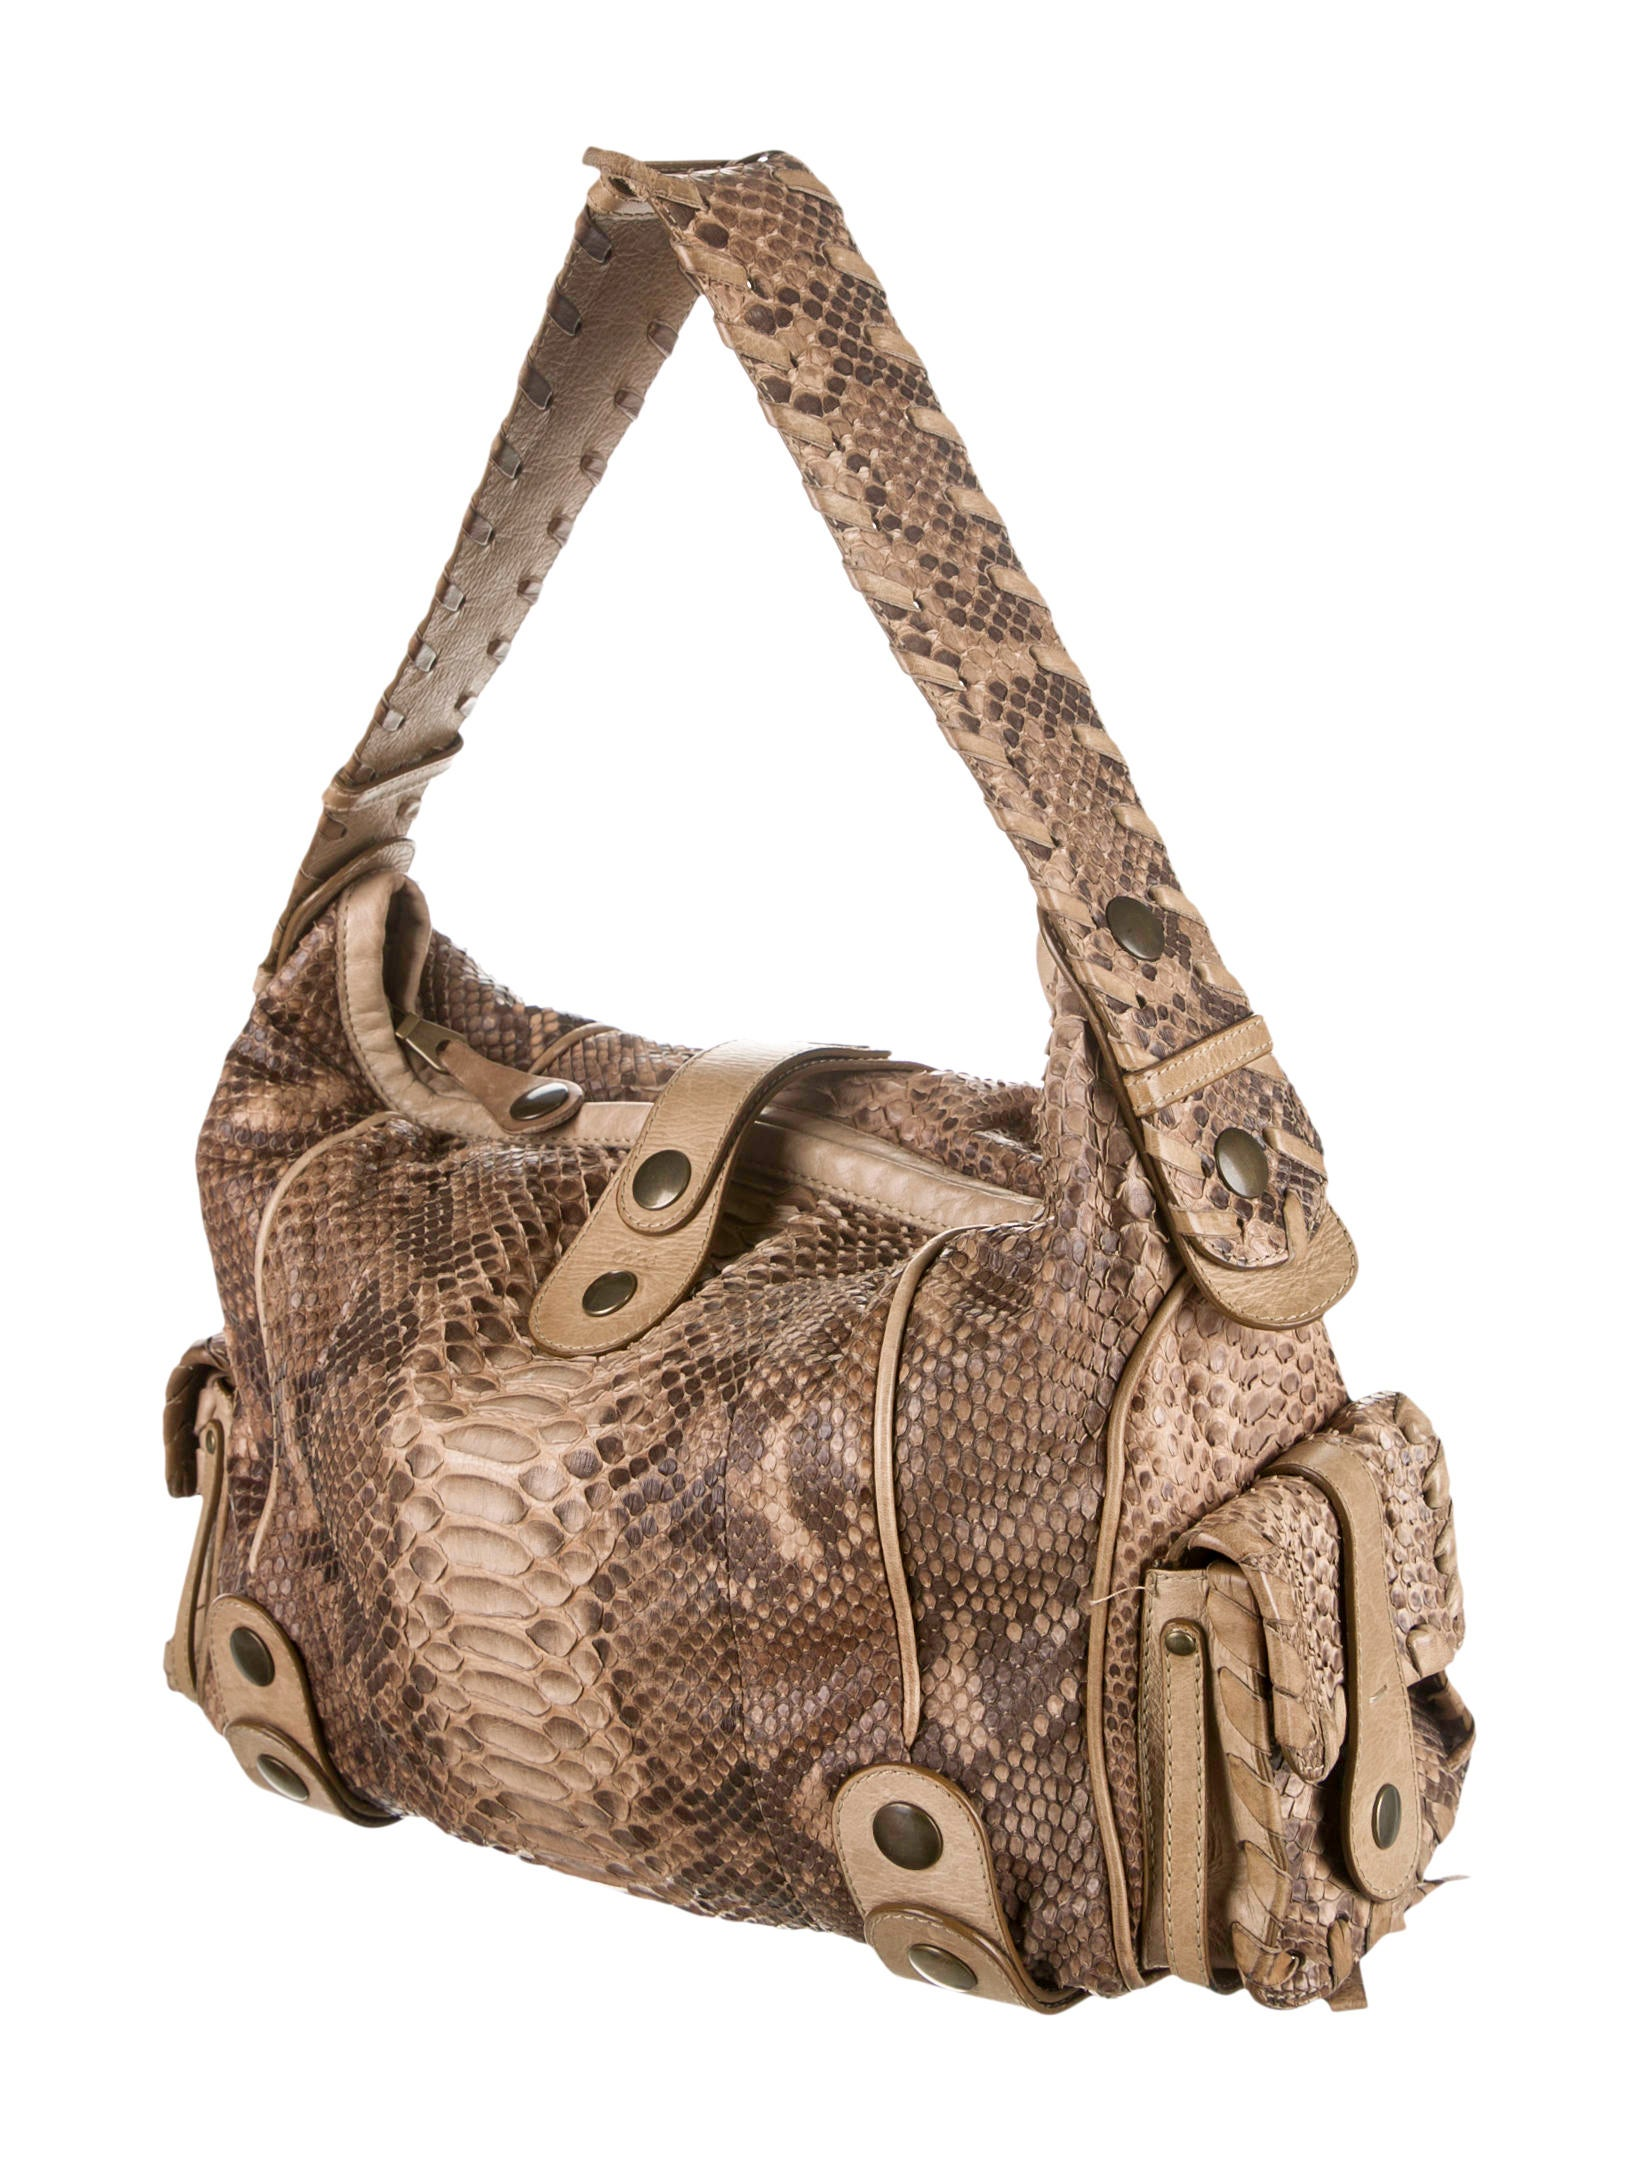 Chlo�� Python Handle Bag - Handbags - CHL29094 | The RealReal